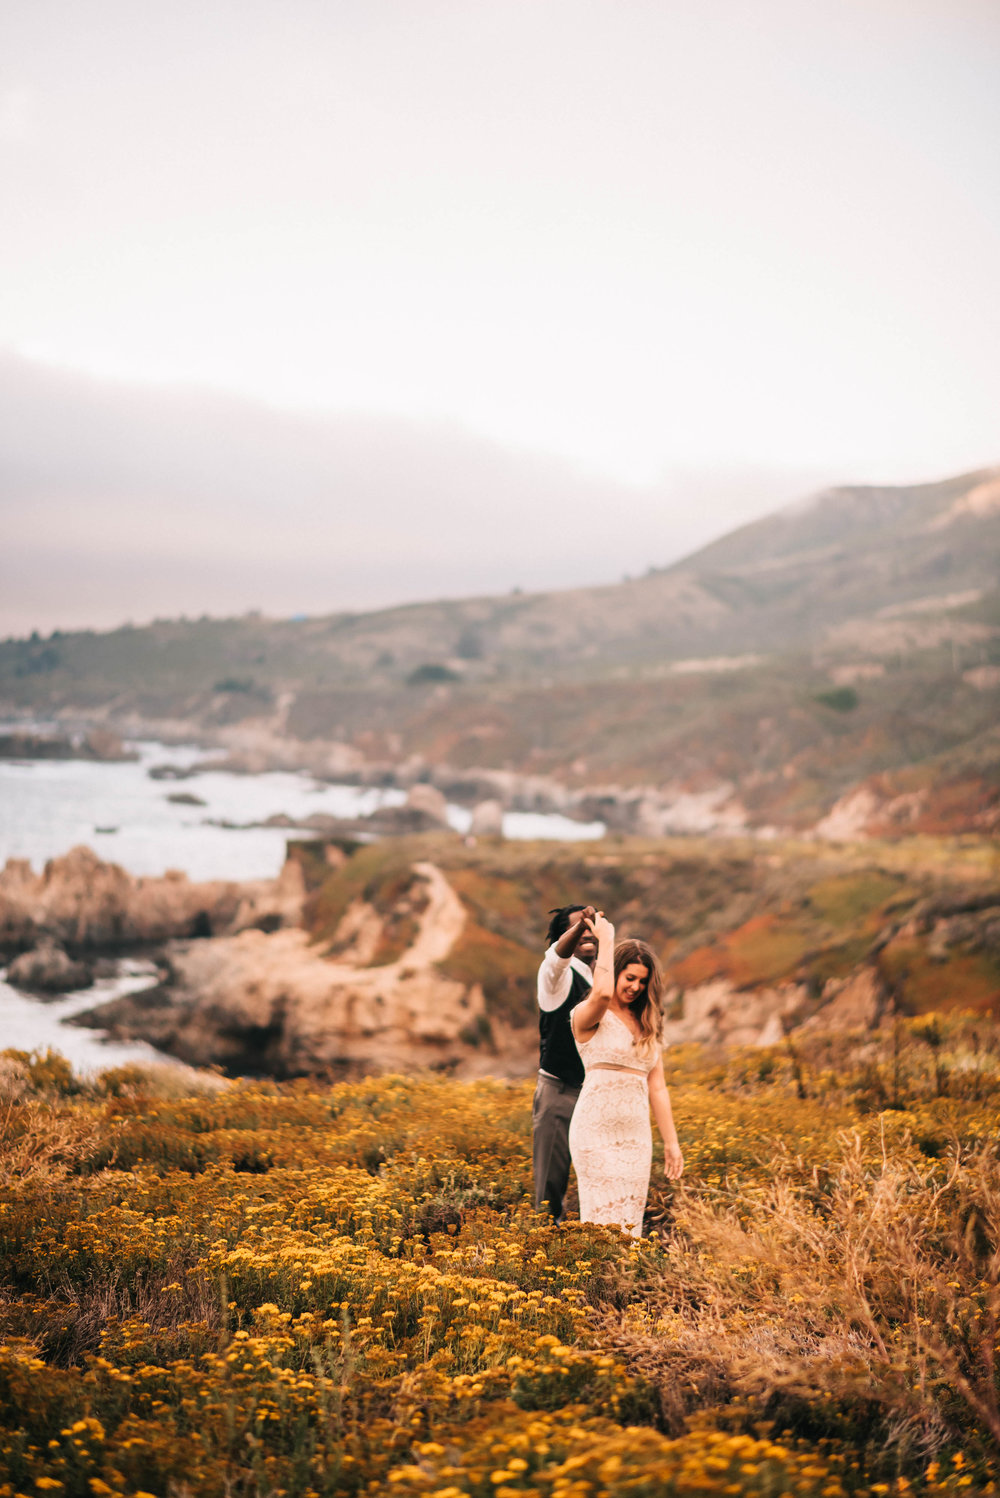 atlanta georgia big sur san francisco california bay area sf oakland wedding portrait adventure engageement nontraditional tattooed couple photographer-44.jpg